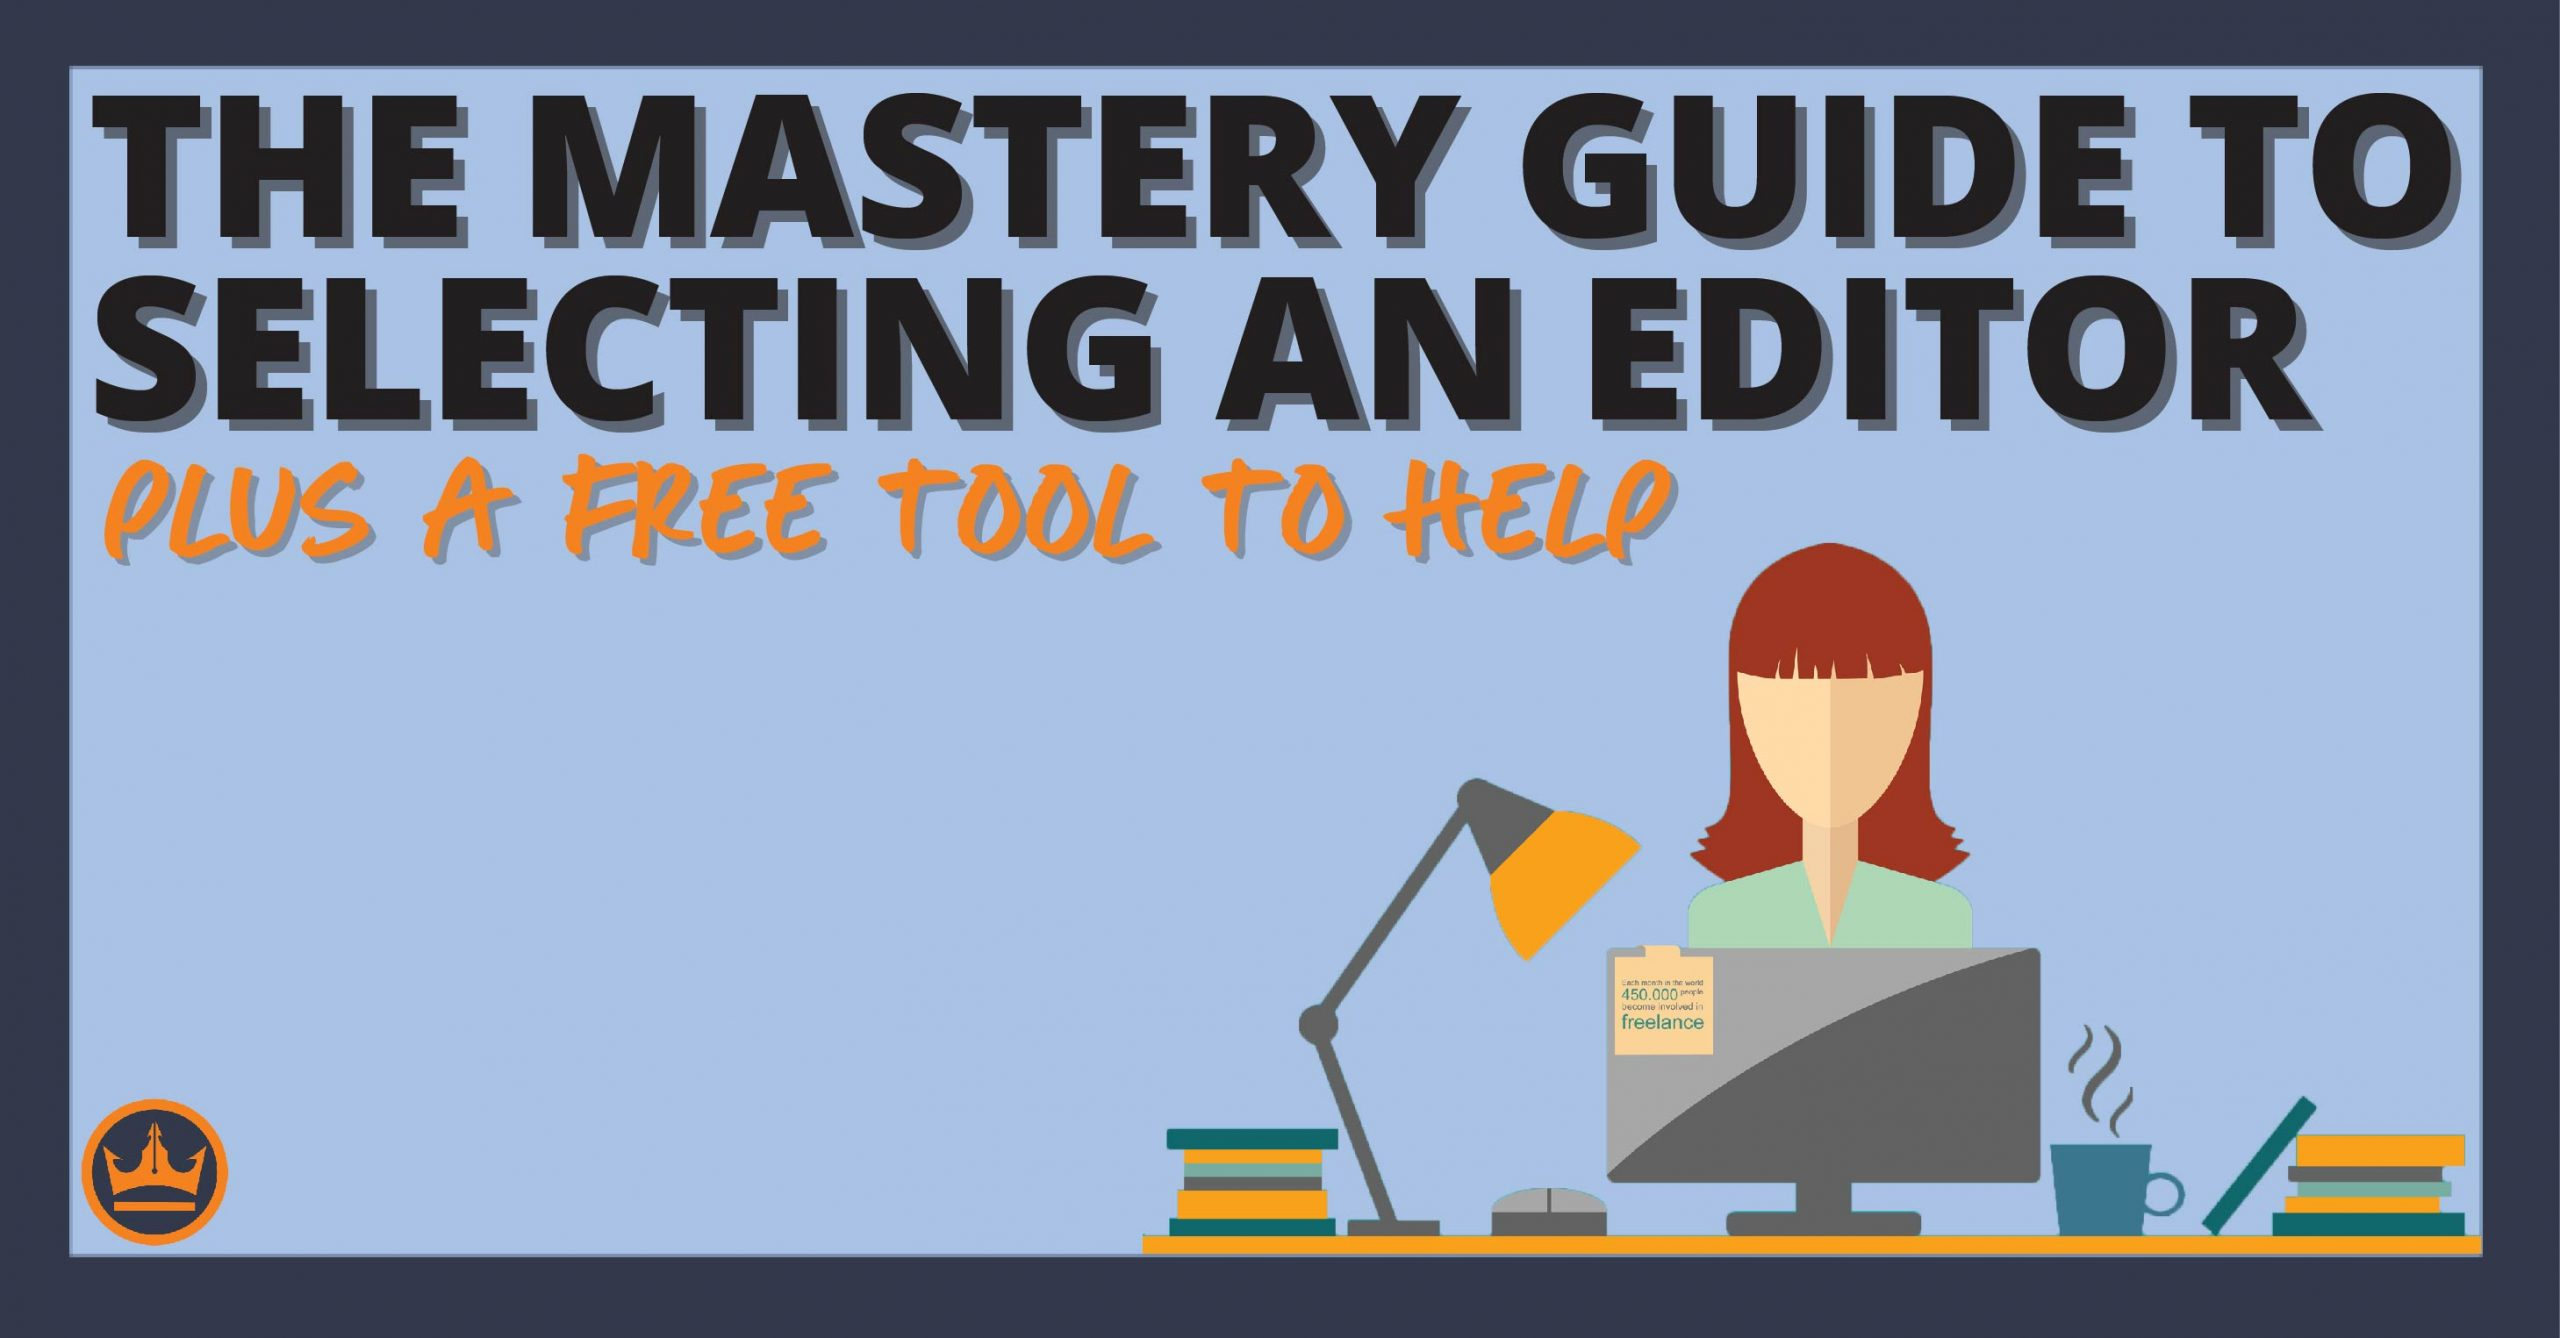 Custom book review editing sites for masters ohs small business plan